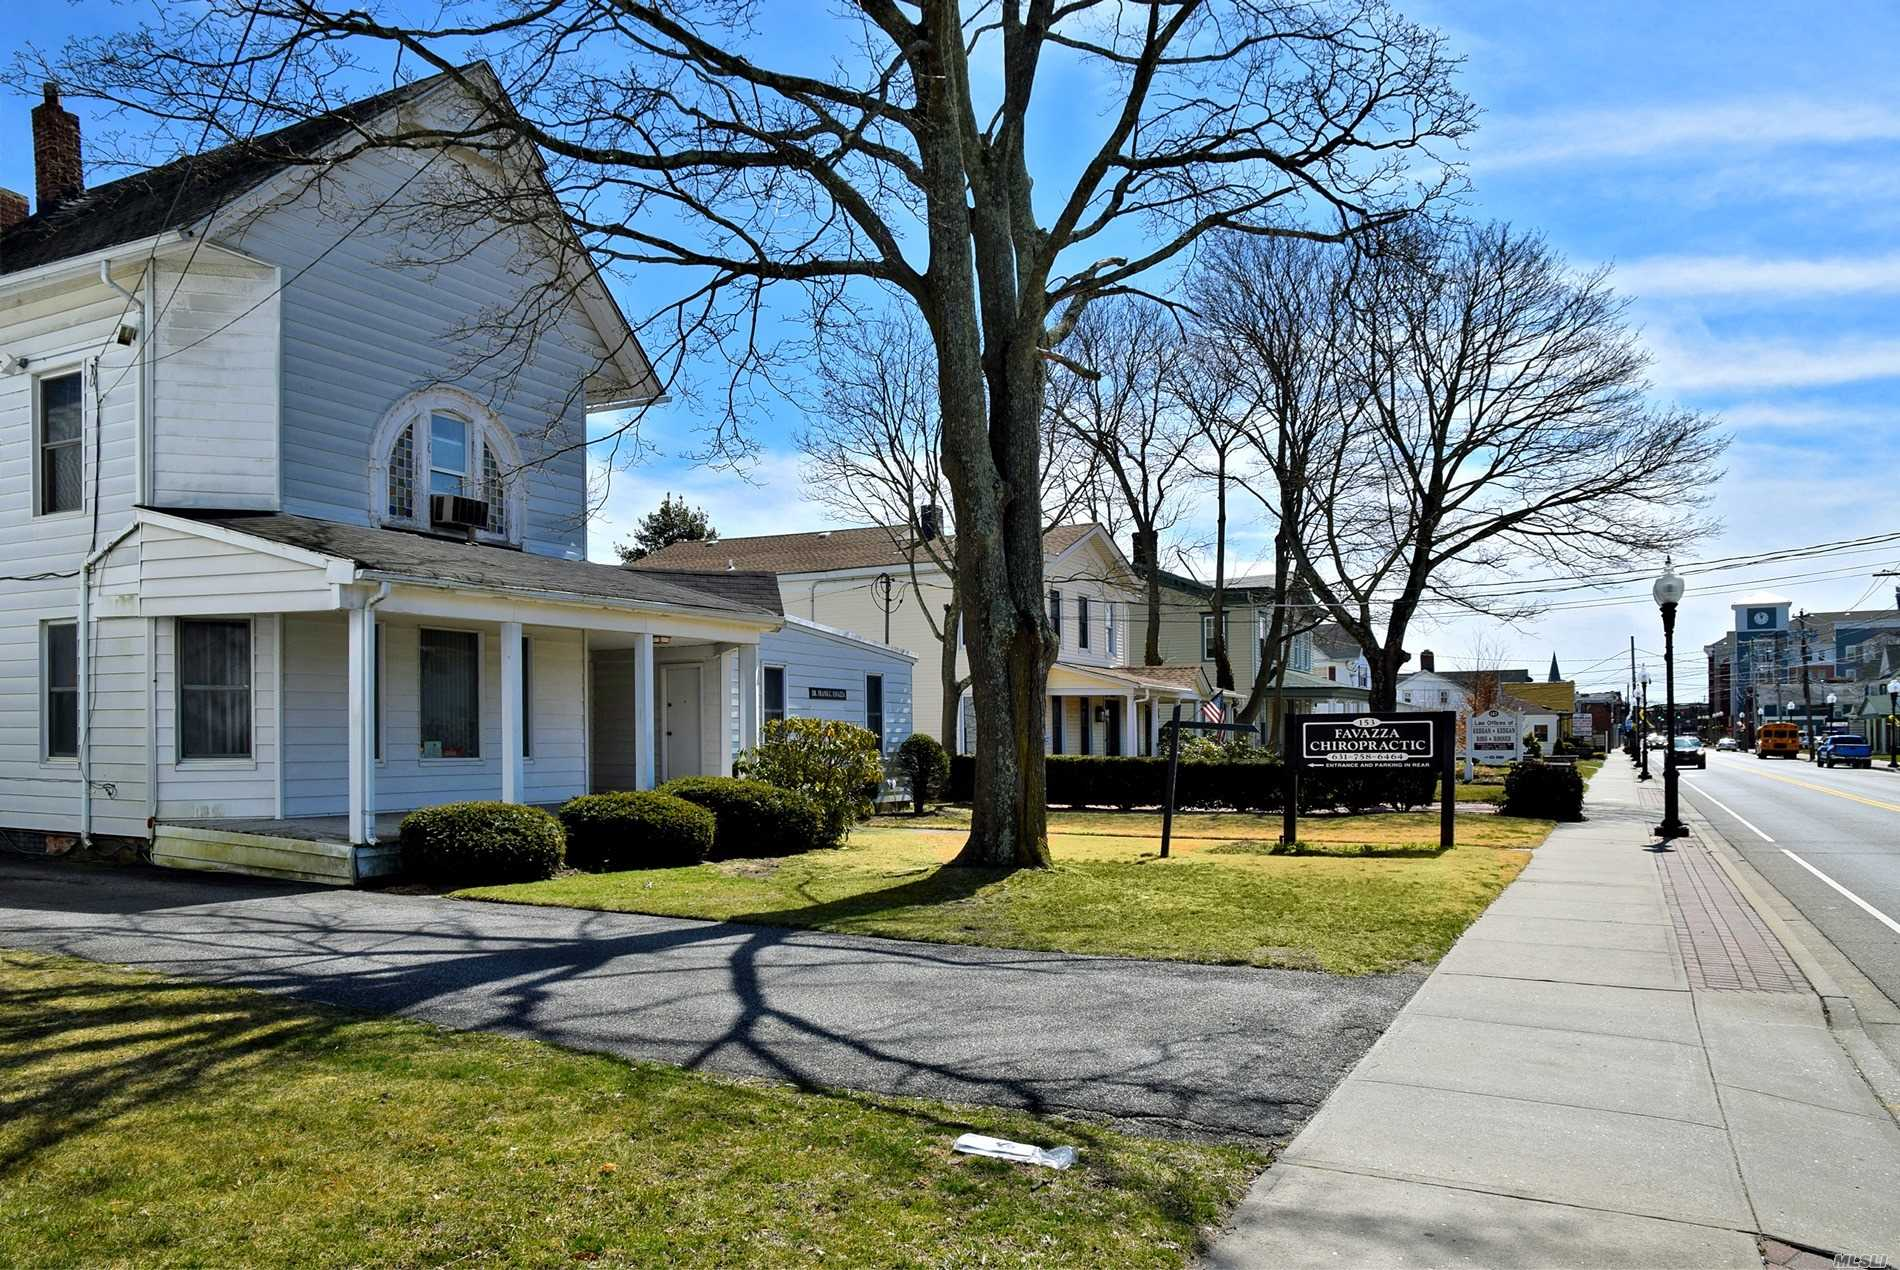 fantastic income producing property. chiropractic office now, attorney, many professional use possibilities..b residence & office district...zoning 435-16.....patchogue village. this beautiful victorian home is located walking distance to Patchogue village. one of the hottest areas on long island. new gas heating unit..call to see it. never rent again..call me